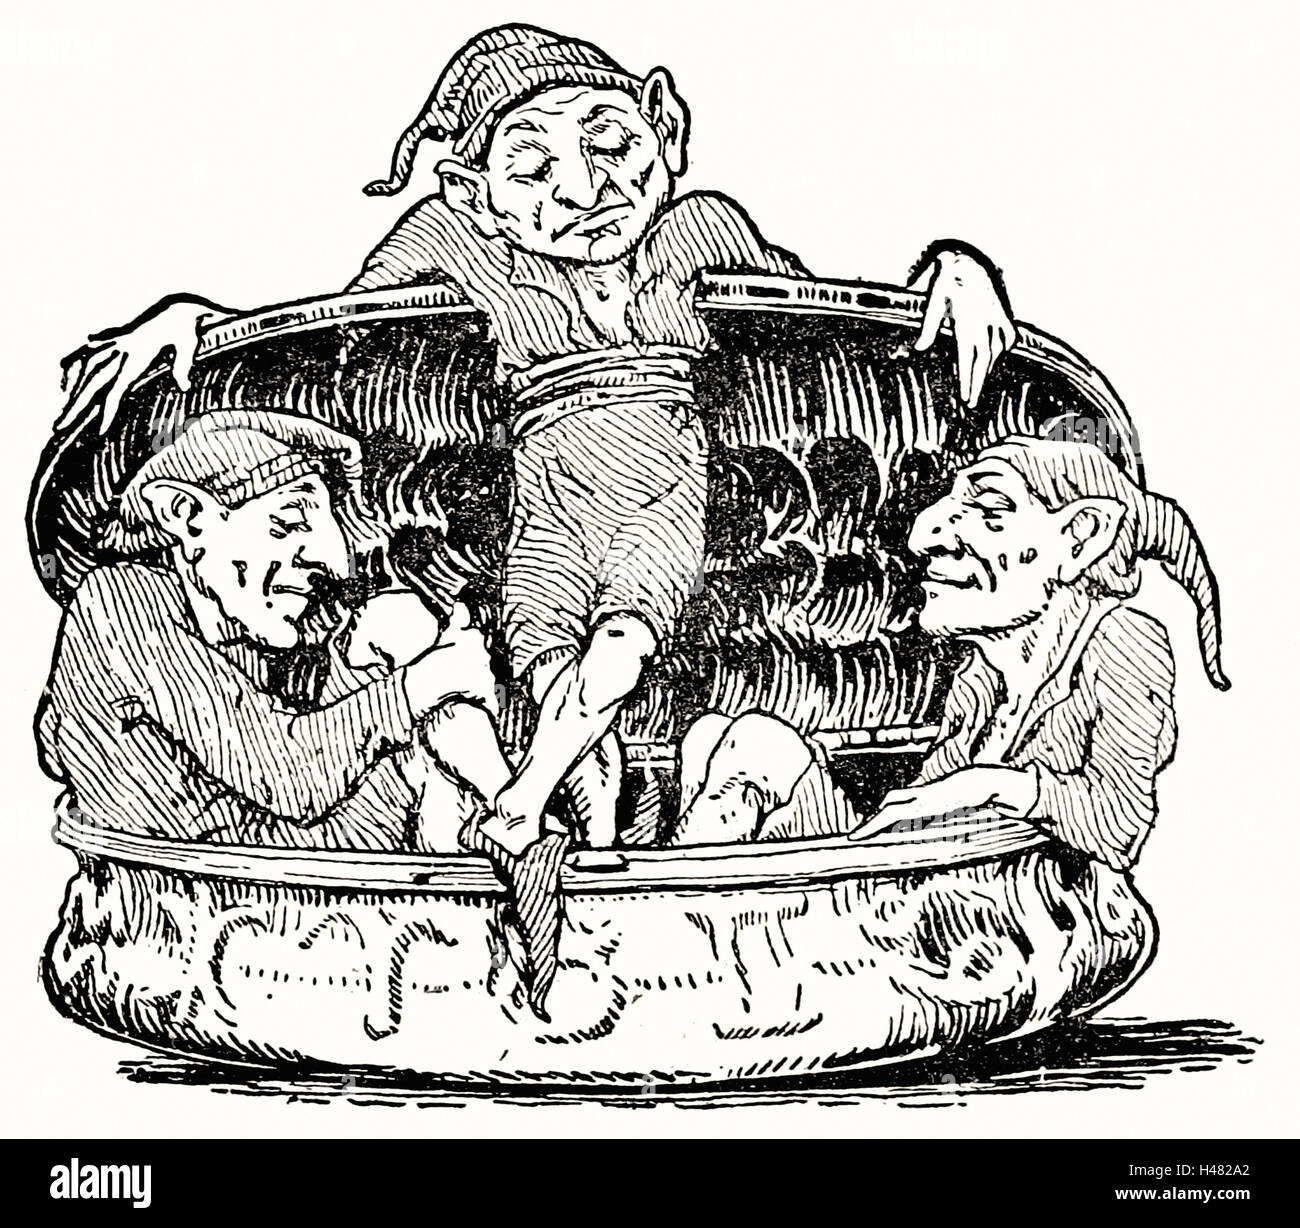 Page 85 illustration in English Fairy Tales - Stock Image